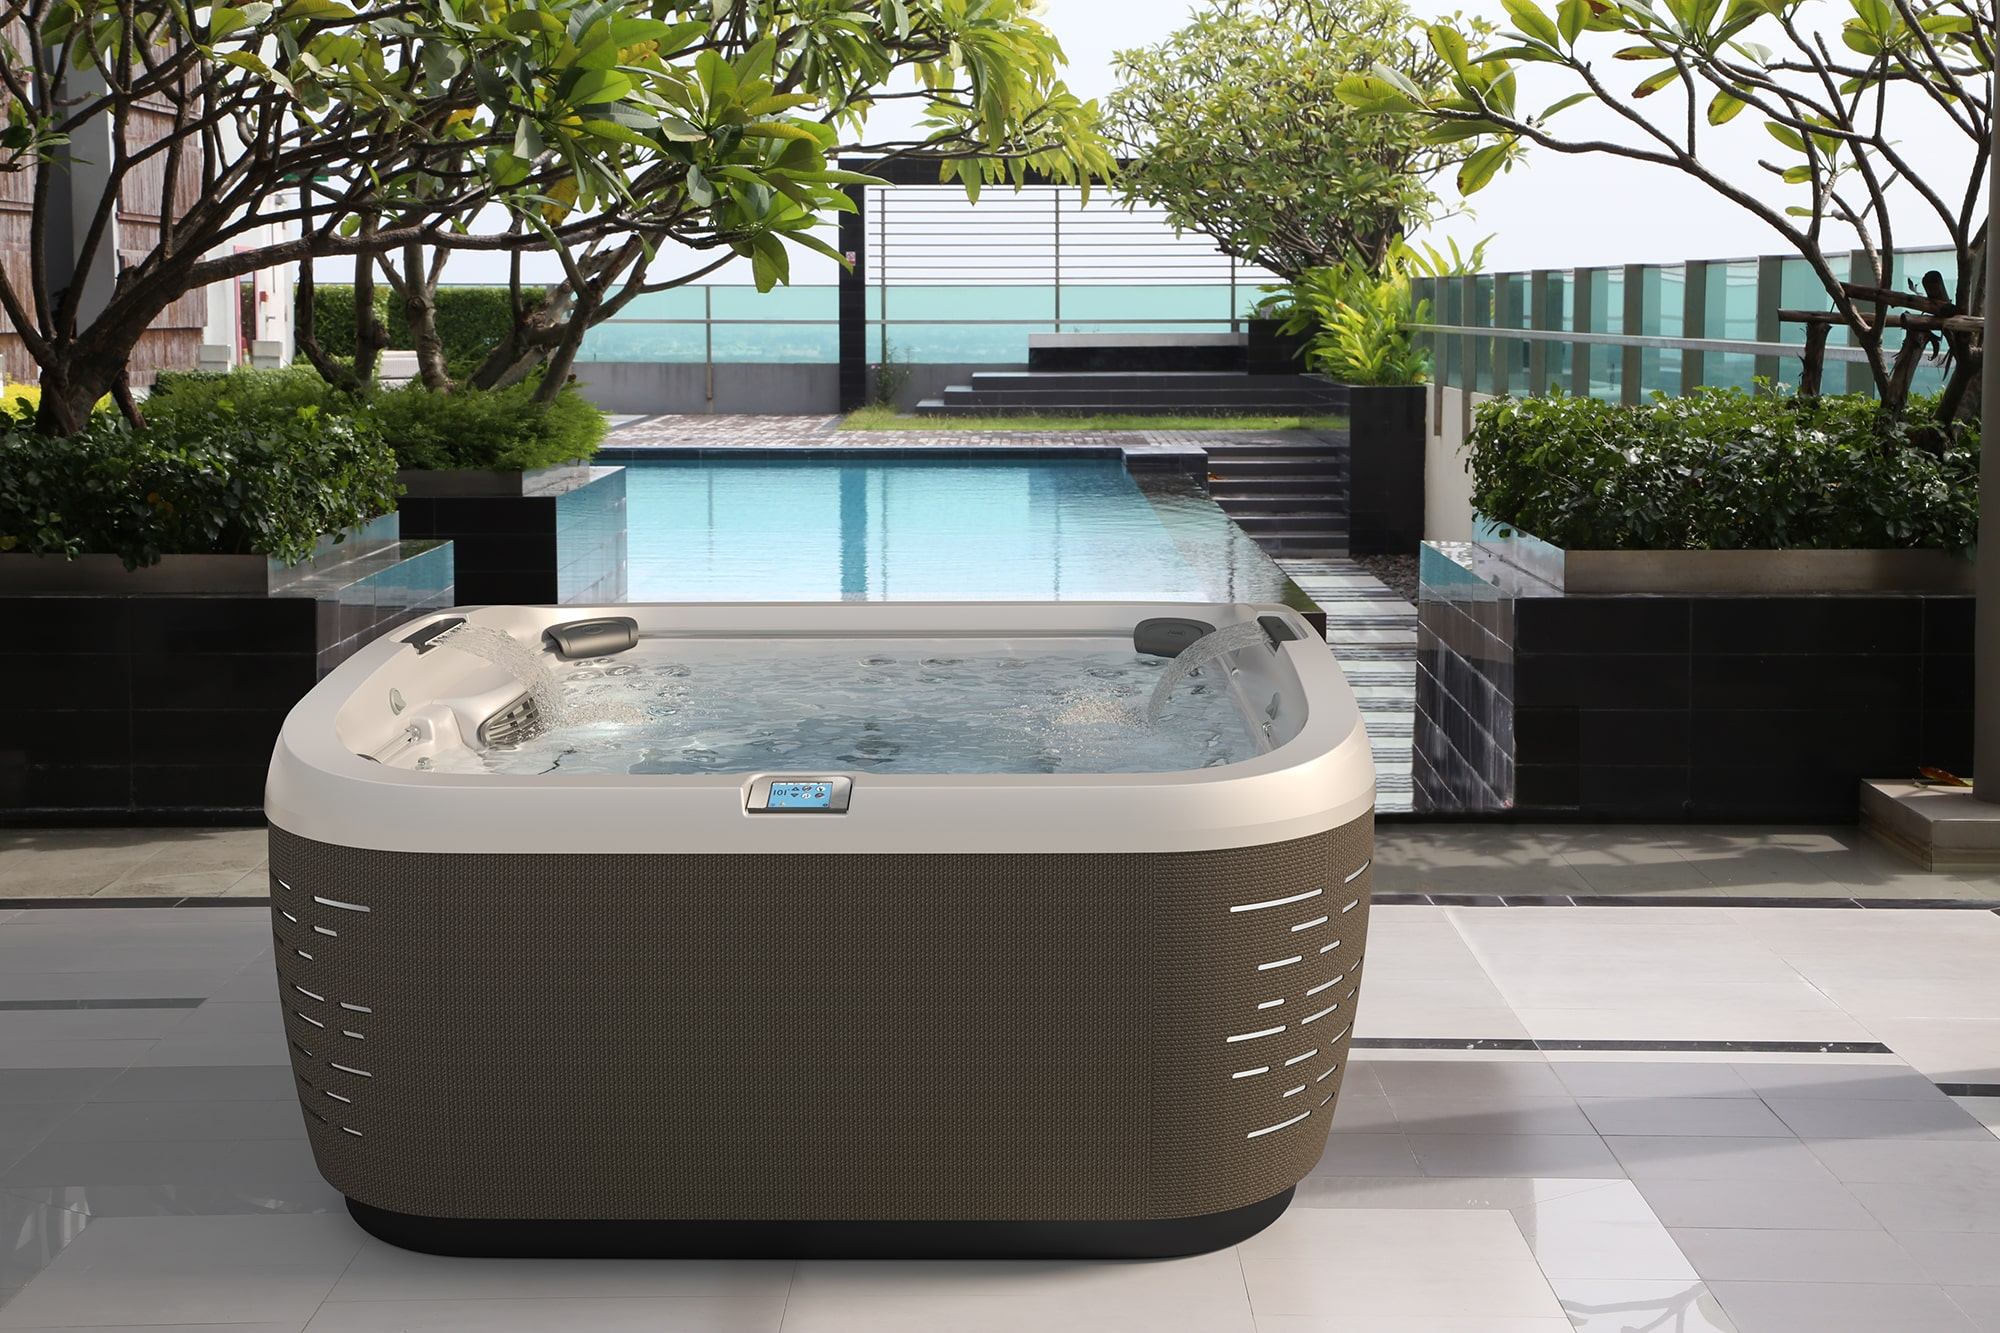 J-585 Jacuzzi Hot Tub installation in West Virginia and Pennsylvania